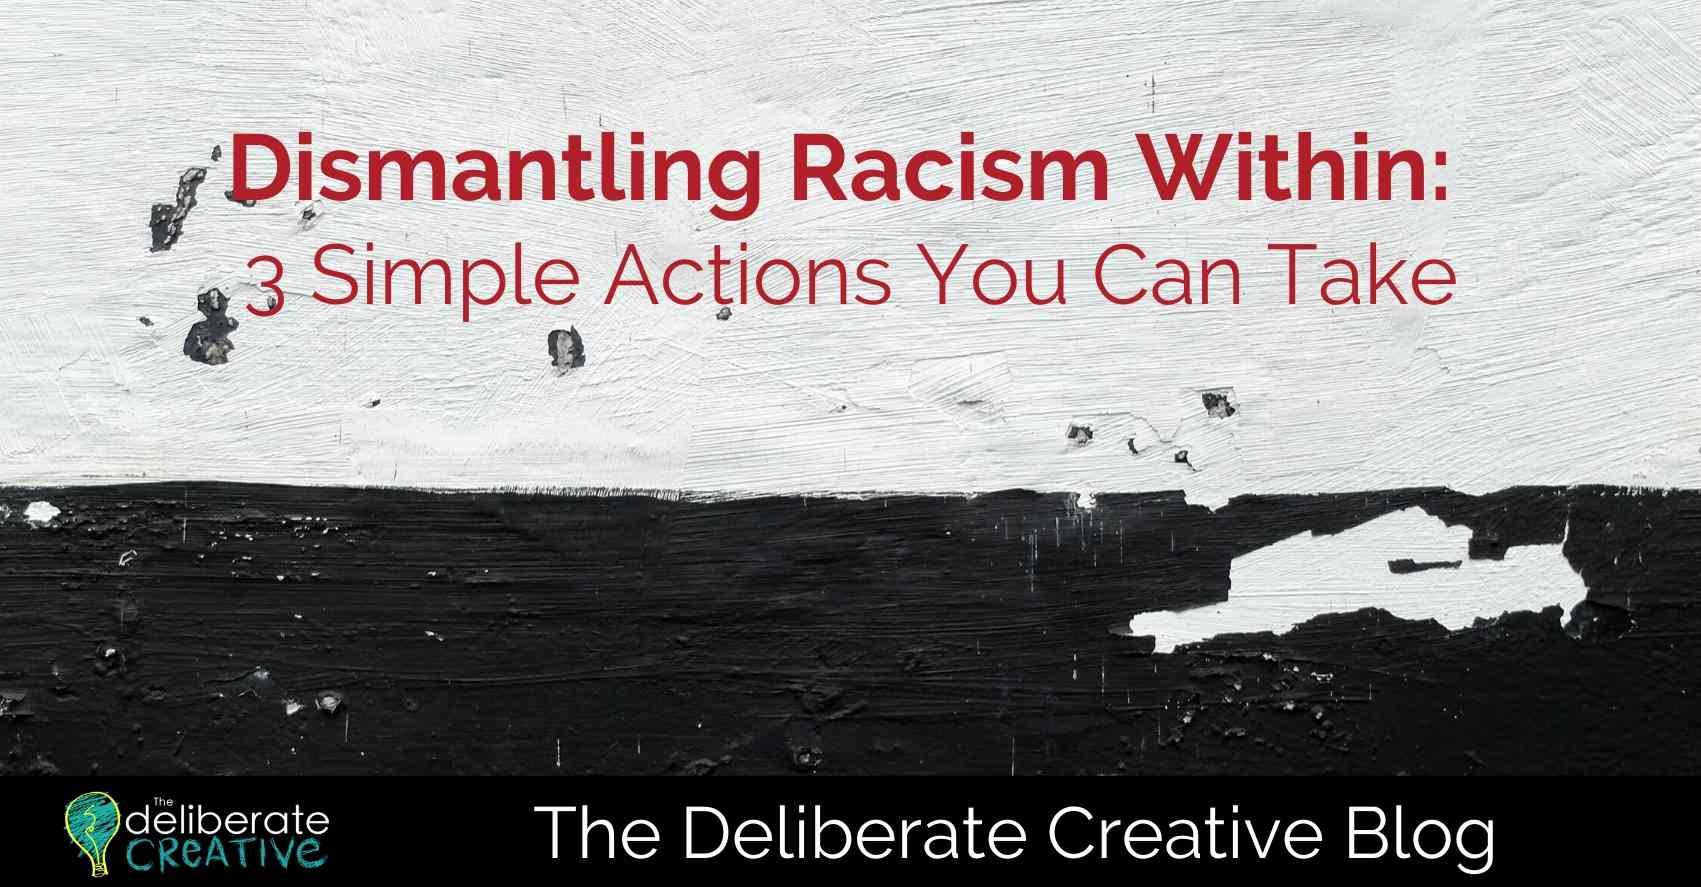 The Deliberate Creative Blog: Dismantling Racism Within